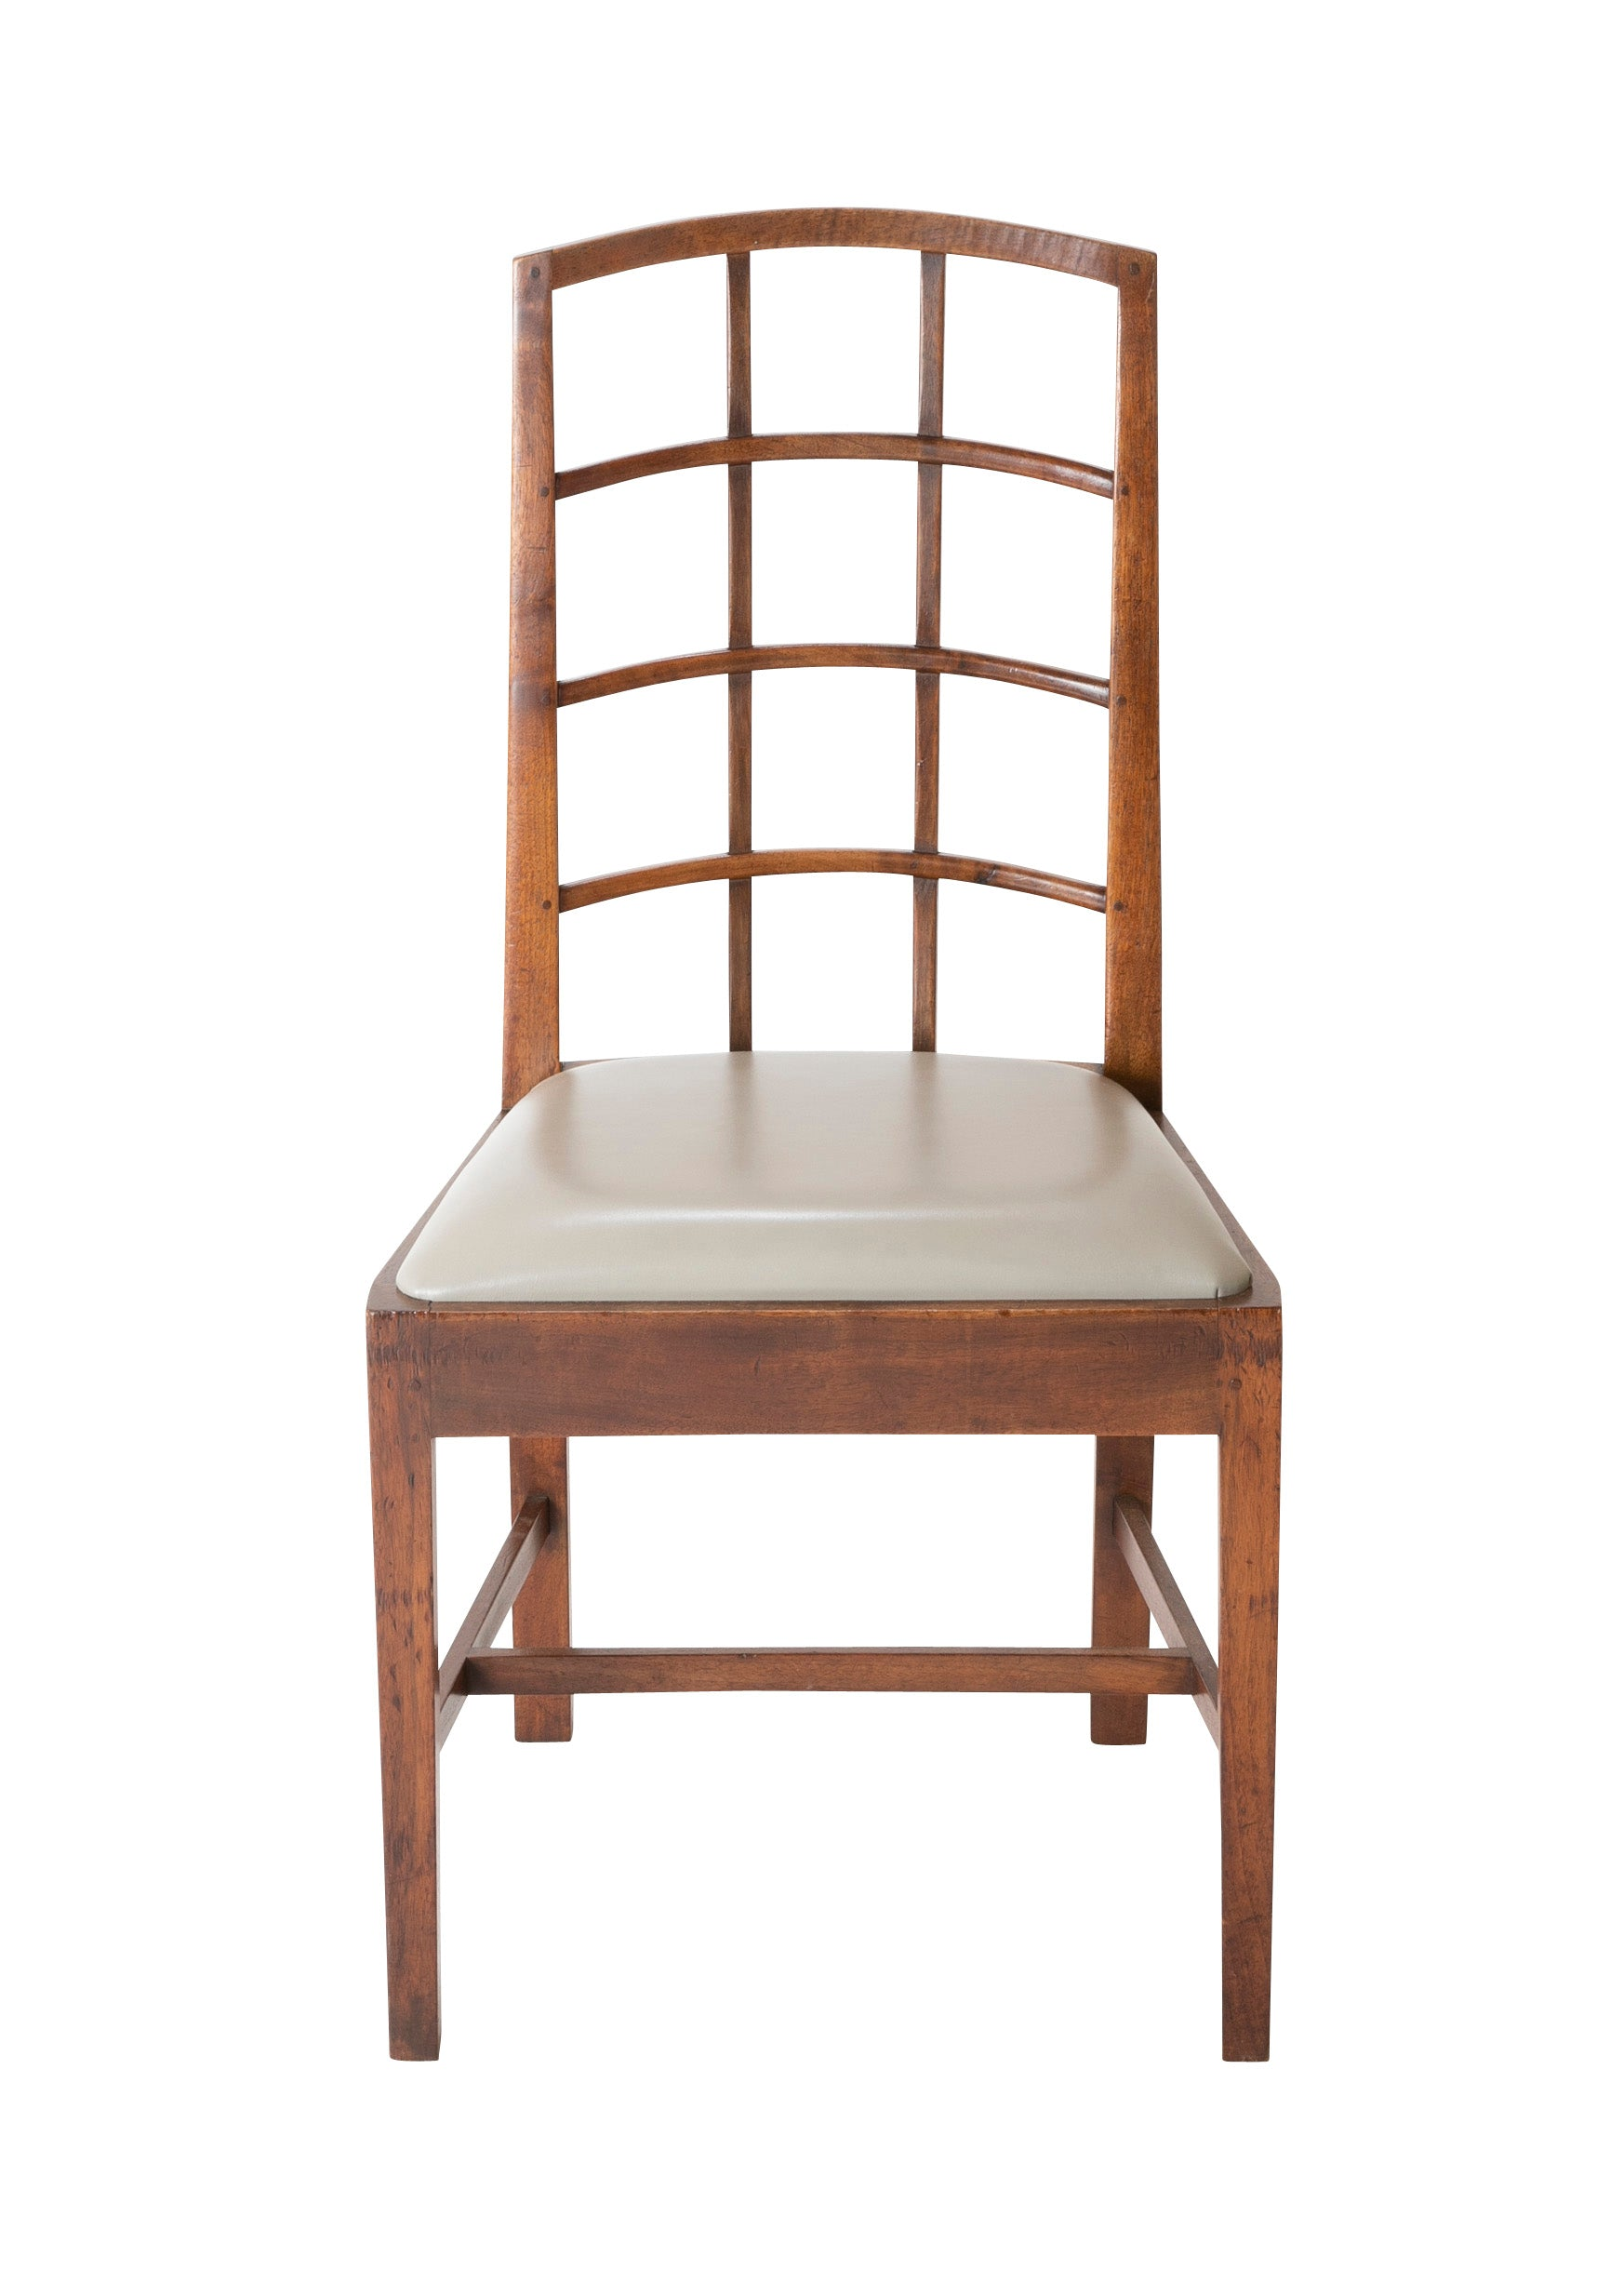 An English Arts & Crafts Style Lattice Back Chair by The Barnsley Workshop